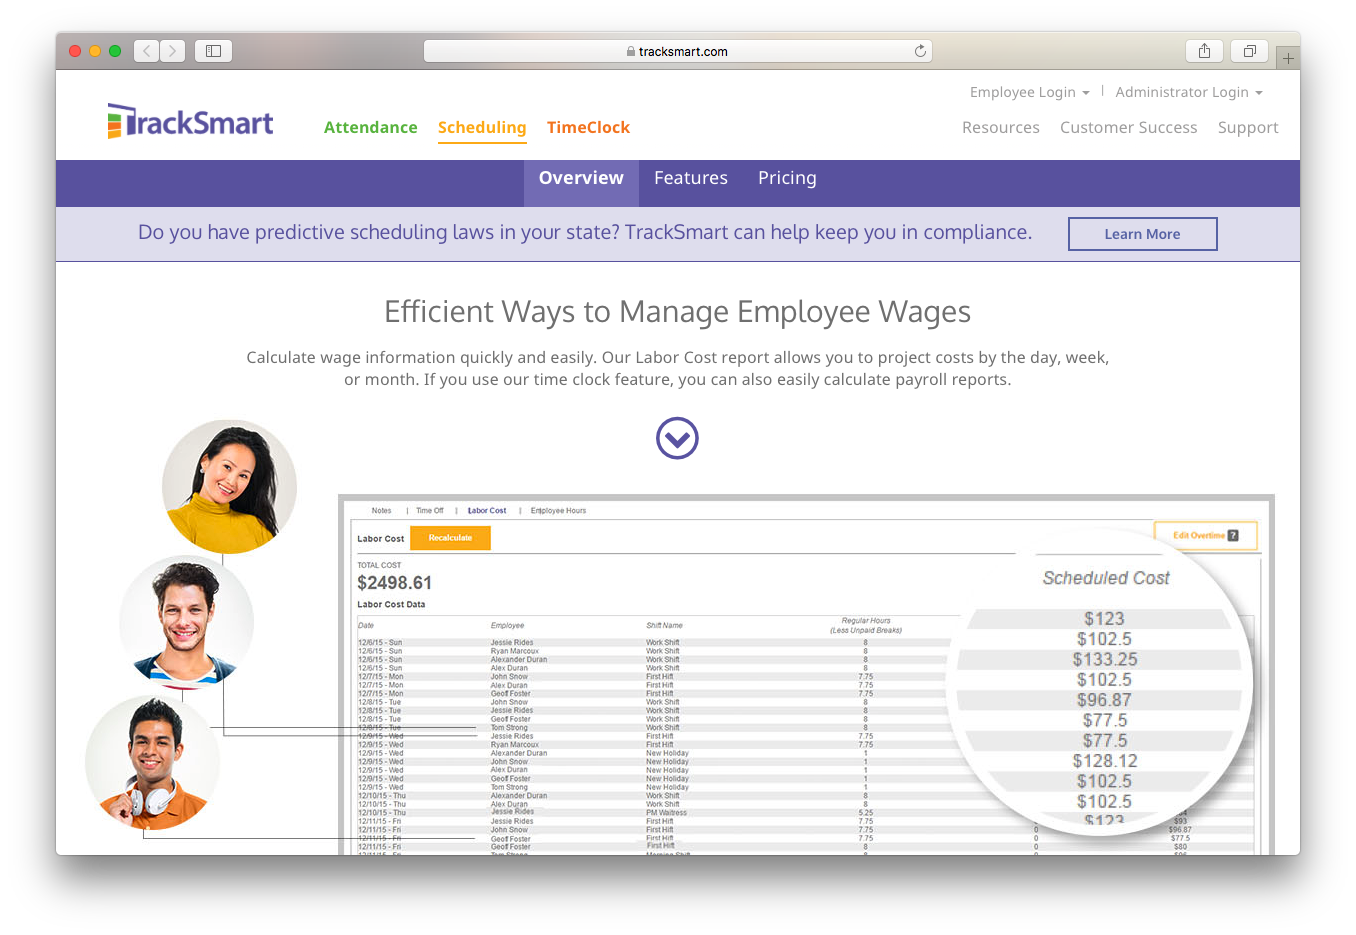 tracksmart scheduling manage employee wages